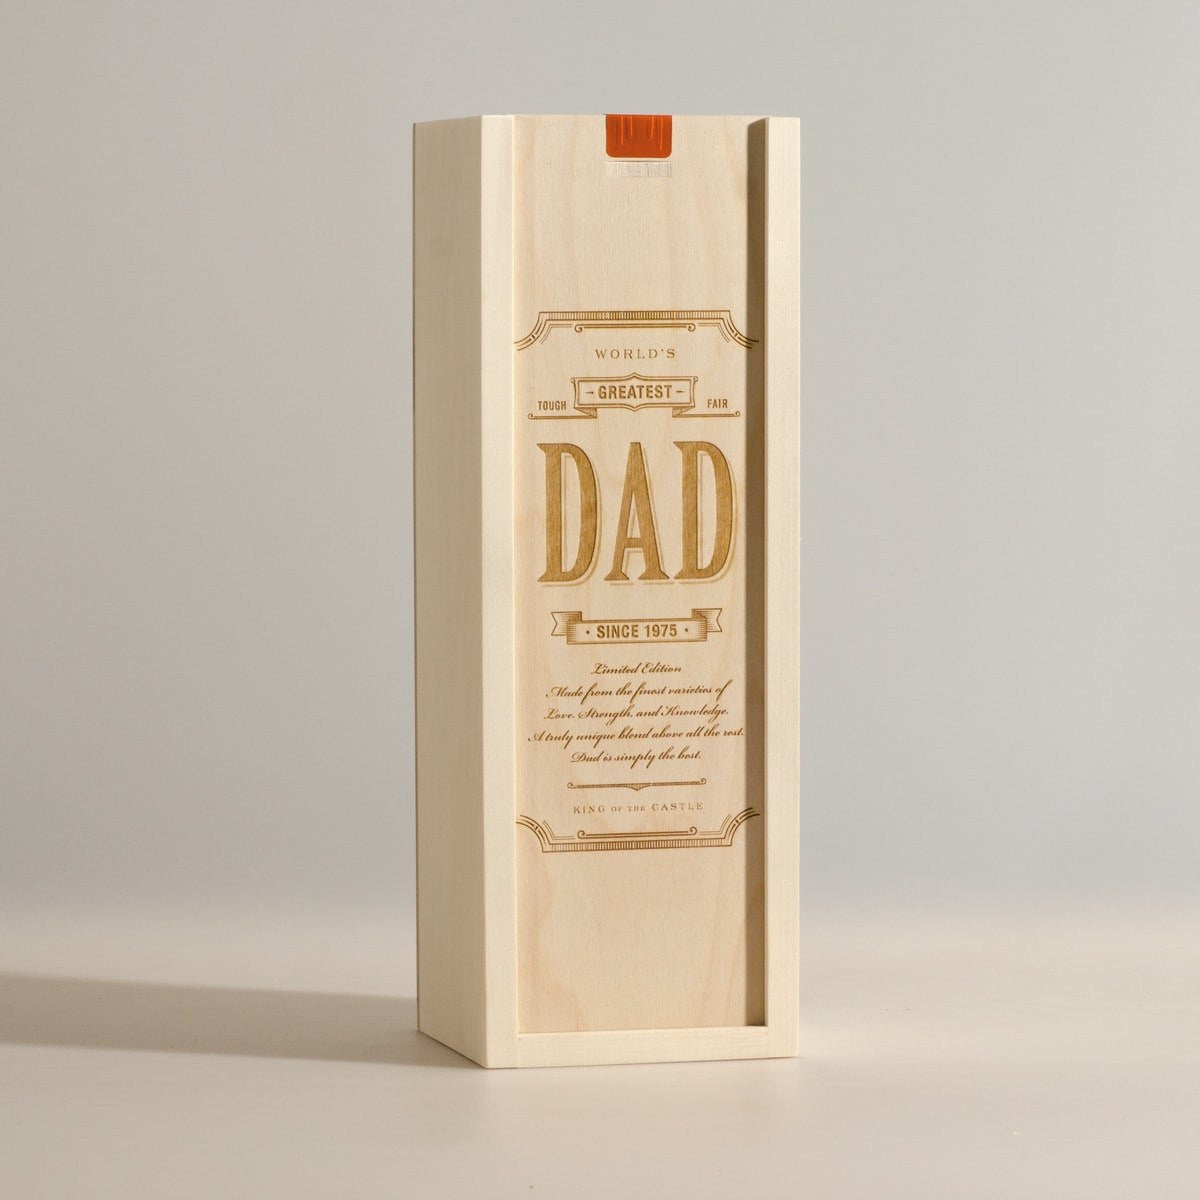 World's Greatest Dad - Wine Box - Main Image